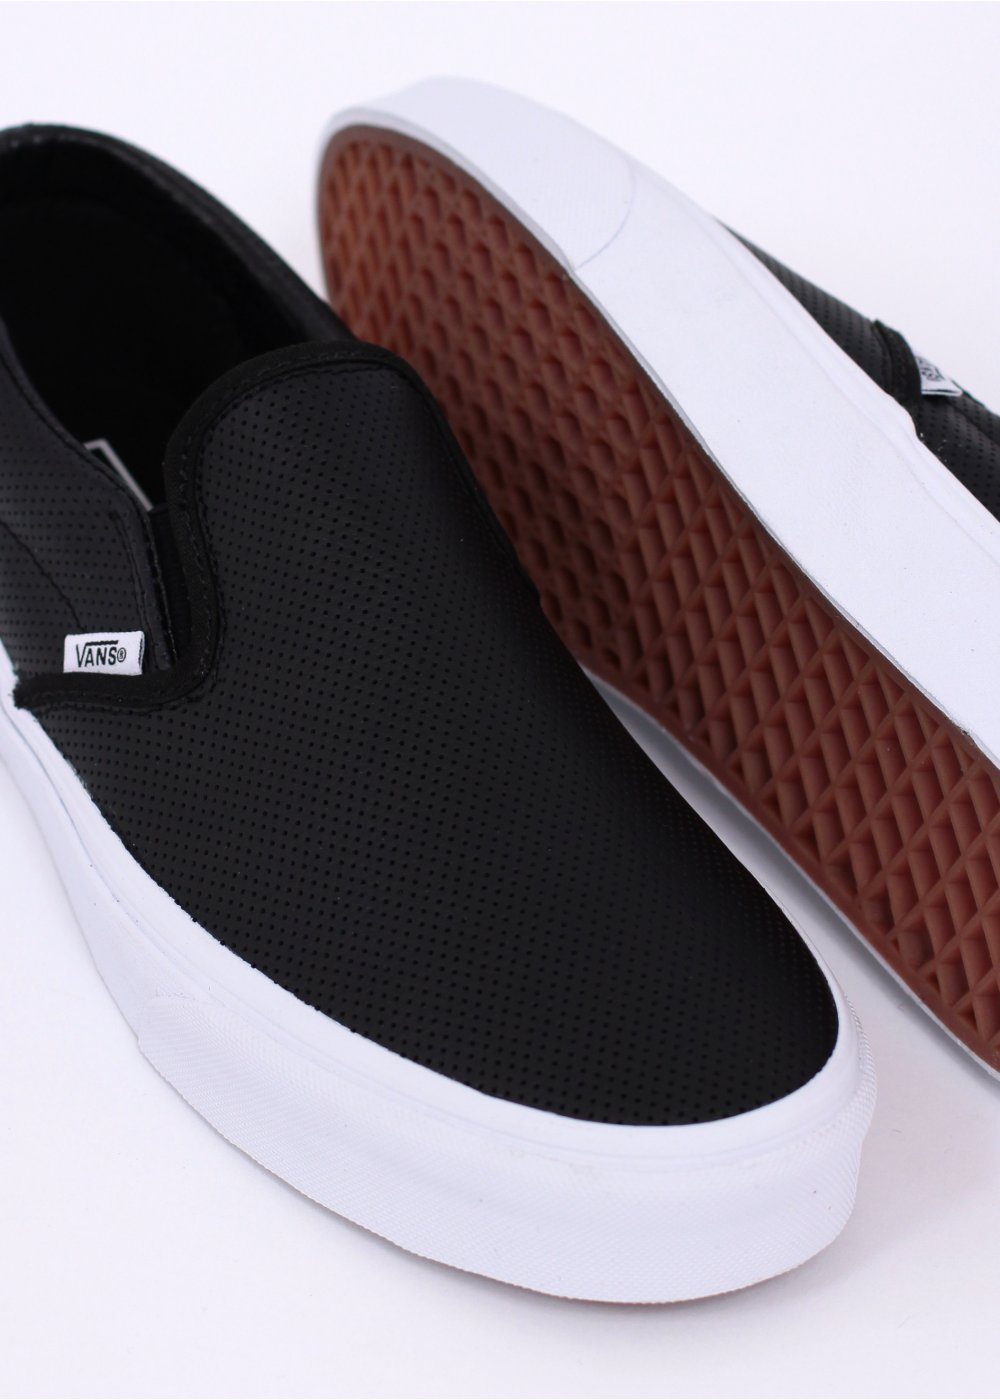 vans classic black perforated leather slip on